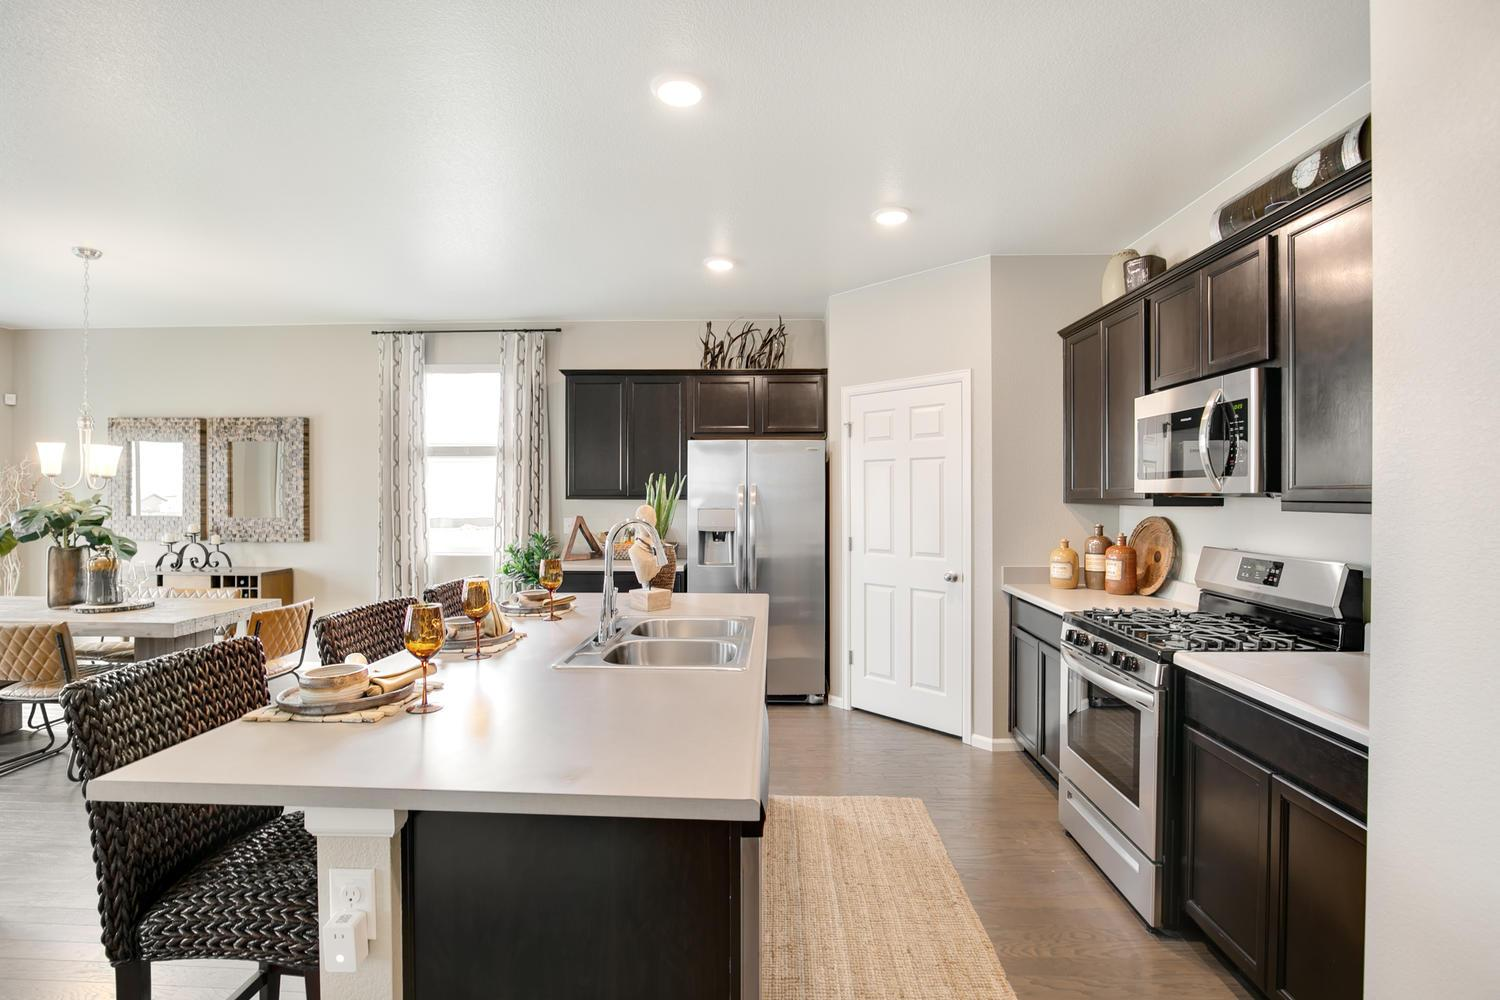 Kitchen featured in the NEUVILLE By D.R. Horton in Fort Collins-Loveland, CO